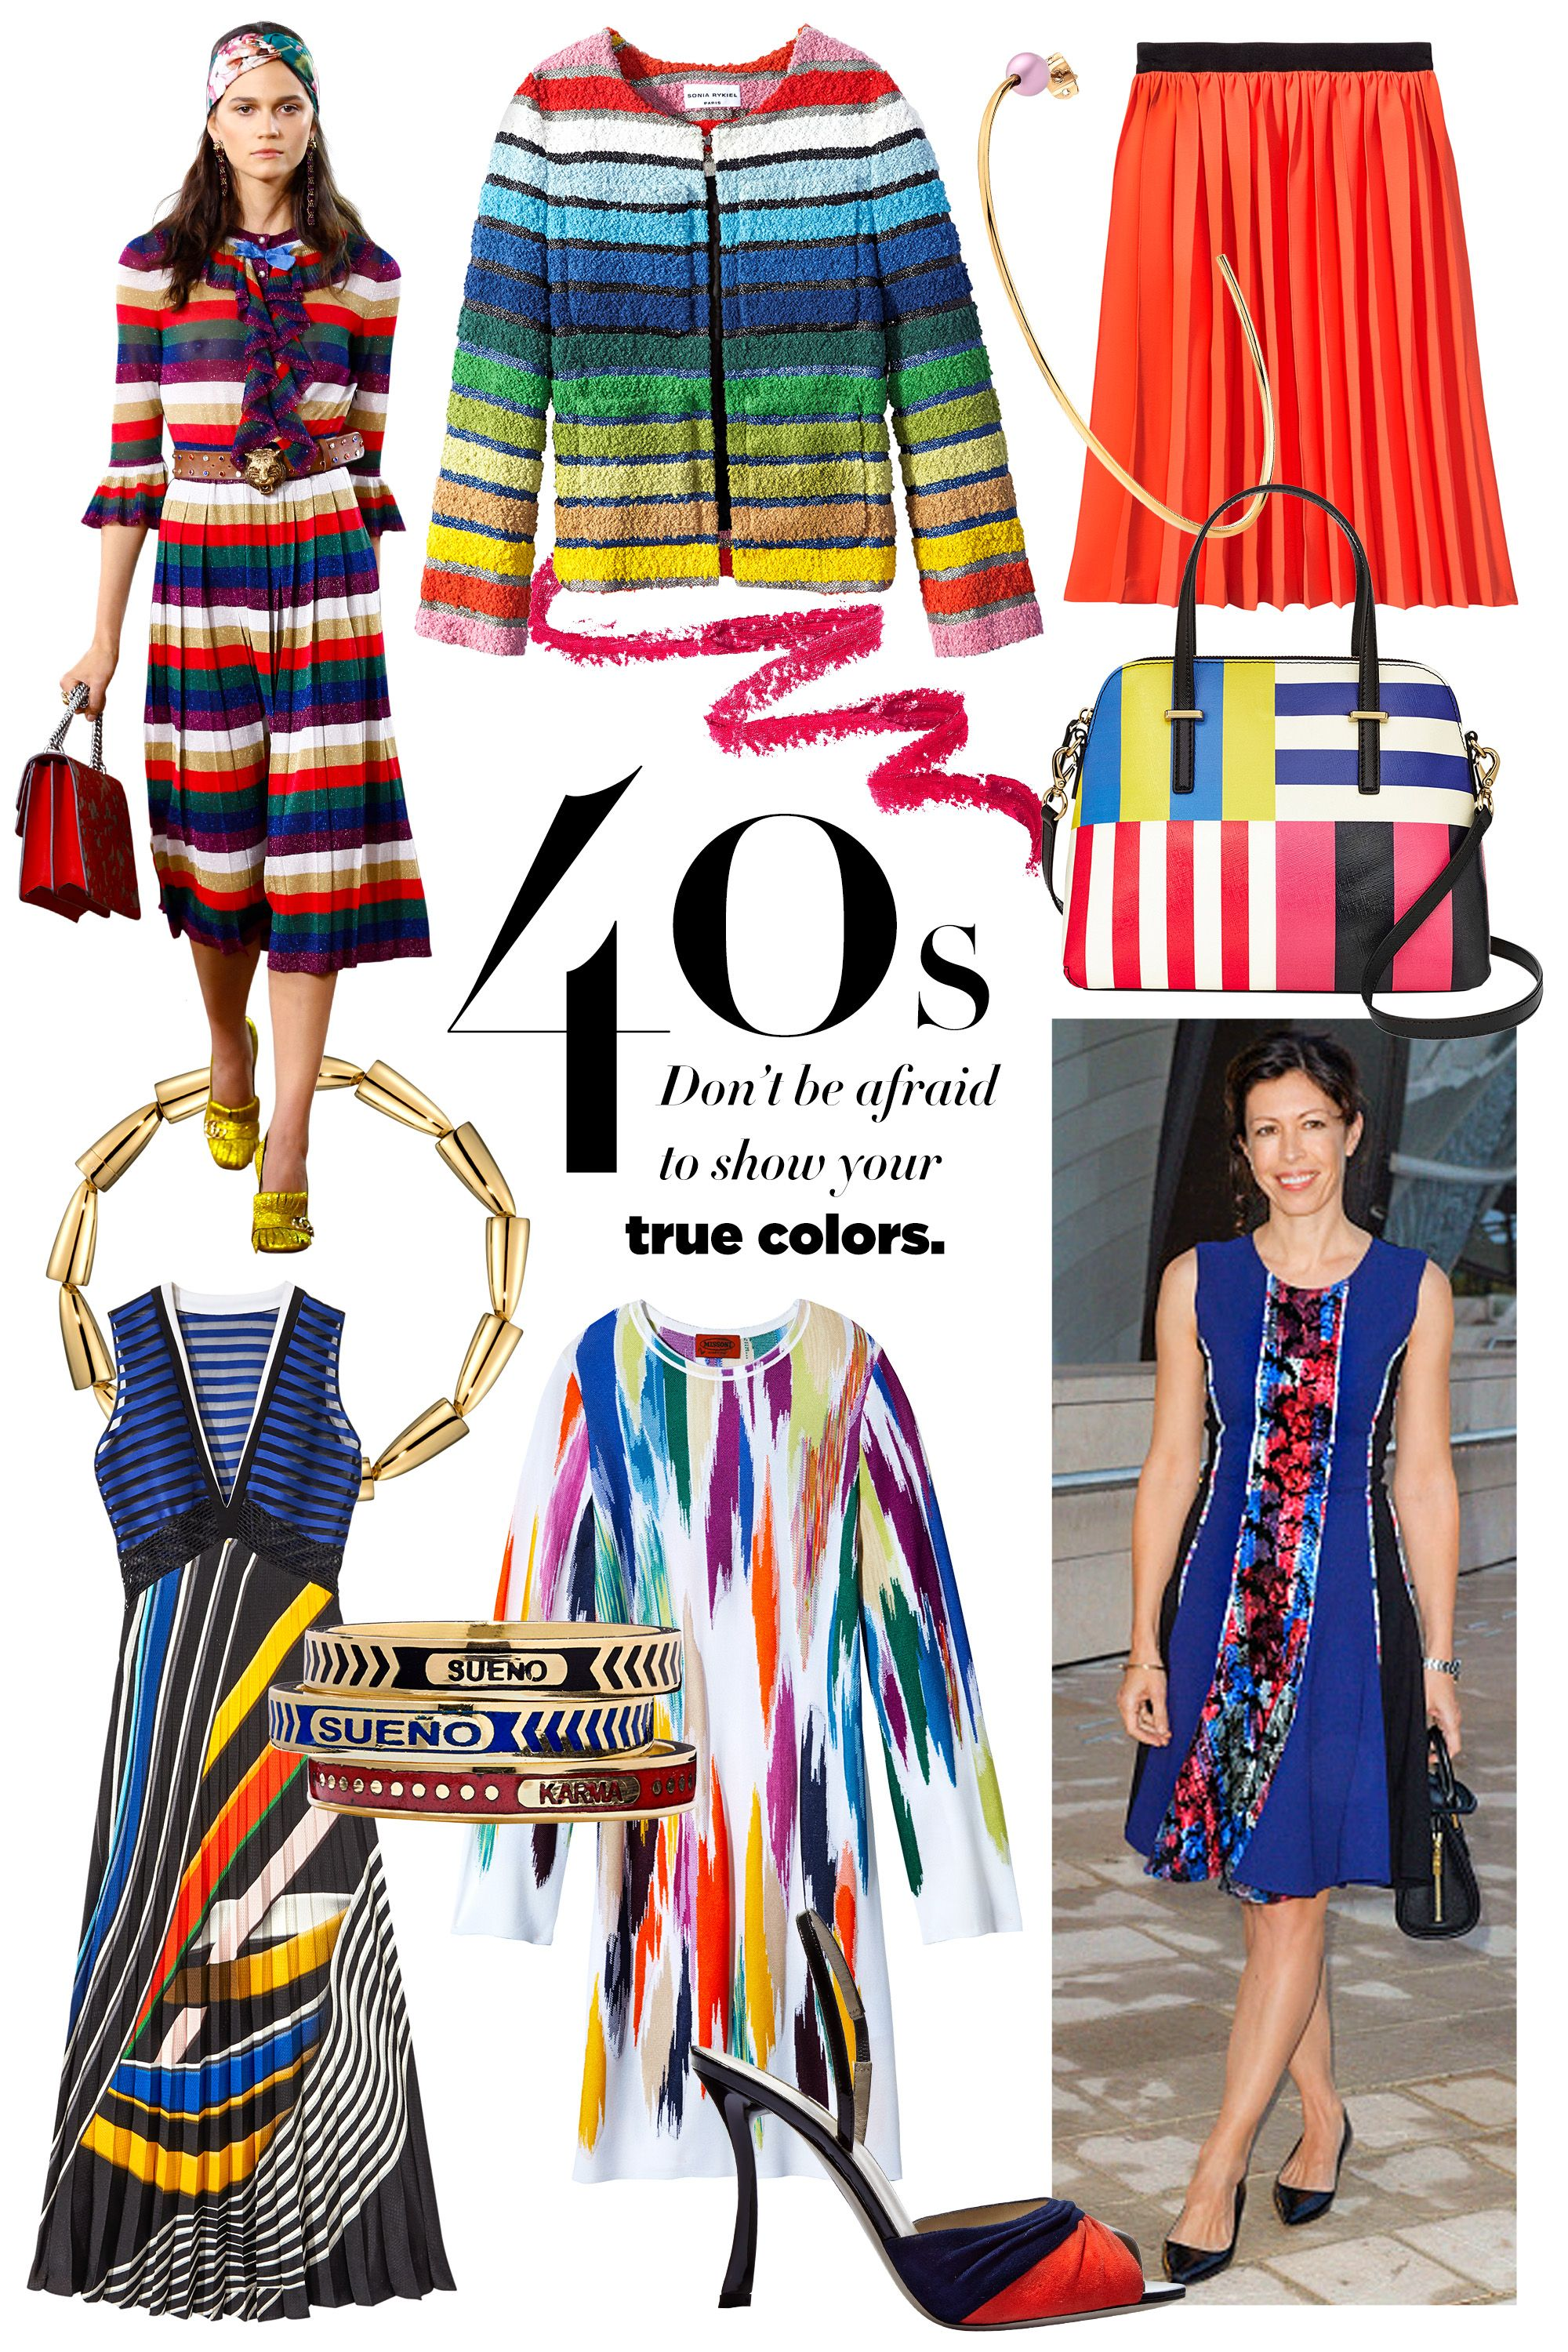 """<p><strong>Stylist's Tip: </strong>Go for basic shapes in rainbow-bright hues.</p><p><strong>Sonia Rykiel </strong>jacket, $1,490, <a href=""""https://shop.harpersbazaar.com/designers/s/sonia-rykiel/rainbow-tweed-jacket-6194.html"""" target=""""_blank"""">shopBAZAAR.com</a><img src=""""http://assets.hdmtools.com/images/HBZ/Shop.svg"""" class=""""icon shop"""">; <strong>Maybelline New York Lip </strong>Studio ColorBlur in Cherry Cherry Bang Bang, $9, <a href=""""http://www.maybelline.com/products/lip-makeup/lip-color/lip-studio-color-blur.aspx"""" target=""""_blank"""">maybelline.com</a>; <strong>Vita Fede</strong> earring, $300, <a href=""""https://shop.harpersbazaar.com/jewelry/earrings/"""" target=""""_blank"""">shopBAZAAR.com</a><img src=""""http://assets.hdmtools.com/images/HBZ/Shop.svg"""" class=""""icon shop"""">; <strong>Diane Von Furstenberg </strong><span class=""""redactor-invisible-space"""">skirt, similar style available at <a href=""""http://www.dvf.com/"""" target=""""_blank"""">dvf.com</a>; <strong>Kate Spade New York </strong><span class=""""redactor-invisible-space"""">bag, $278, <a href=""""https://www.katespade.com/handbags/view-all/"""" target=""""_blank"""">katespade.com</a>; <strong>Vhernier </strong><span class=""""redactor-invisible-space"""">necklace, 310-273-2444; <strong>Mary Katrantzou </strong><span class=""""redactor-invisible-space"""">dressm $2,275, Neiman Marcus, Beverly Hills, 310-550-5900; <strong>Foundrae </strong>rings, $1,295 each, <a href=""""http://foundrae.com/"""" target=""""_blank"""">foundrae.com</a>; </span></span></span></span><strong>Missoni </strong><span class=""""redactor-invisible-space"""">dress</span> $2,465, <a href=""""https://shop.harpersbazaar.com/designers/m/missoni/abstract-intarsia-knit-dress-6211.html"""" target=""""_blank"""">shopBAZAAR.com</a><img src=""""http://assets.hdmtools.com/images/HBZ/Shop.svg"""" class=""""icon shop"""">; <strong>Giorgio Armani </strong>sandal, $825, 212-988-9191.</p><p><em>Runway look: Gucci</em></p>"""